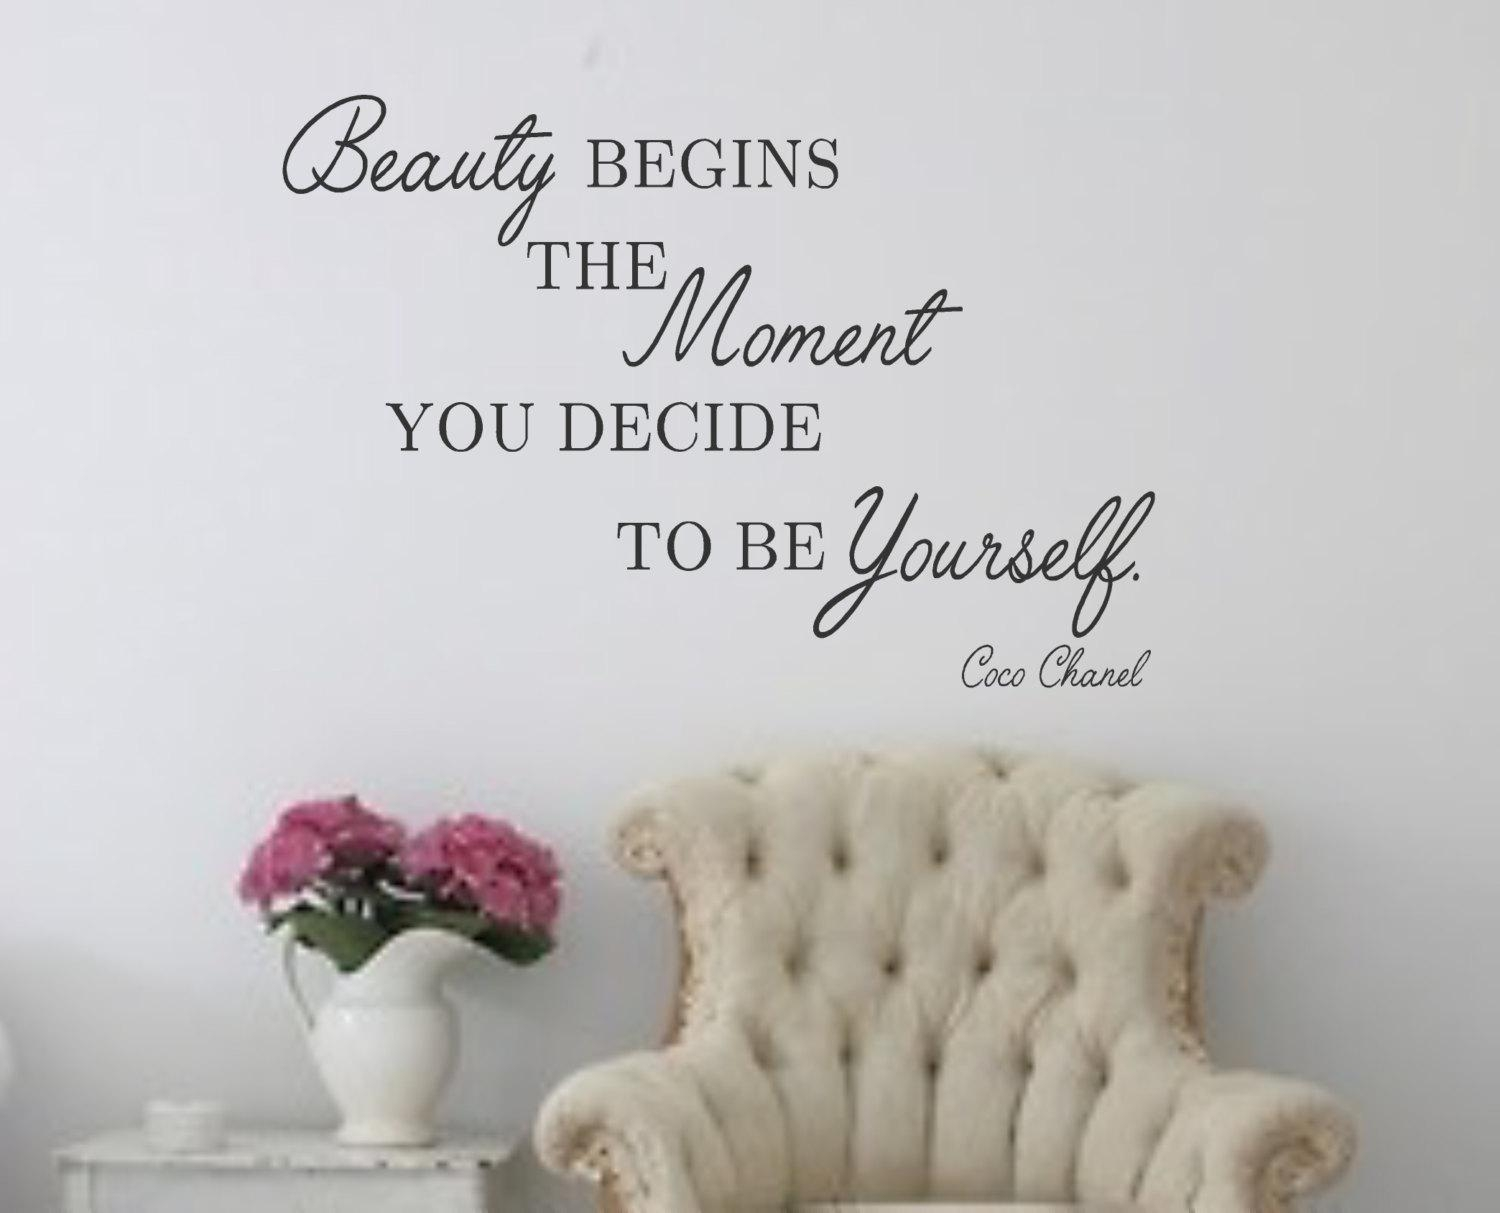 Wall Decal Beauty Begins The Moment You Decide To Be Pertaining To Coco Chanel Wall Decals (Image 19 of 20)